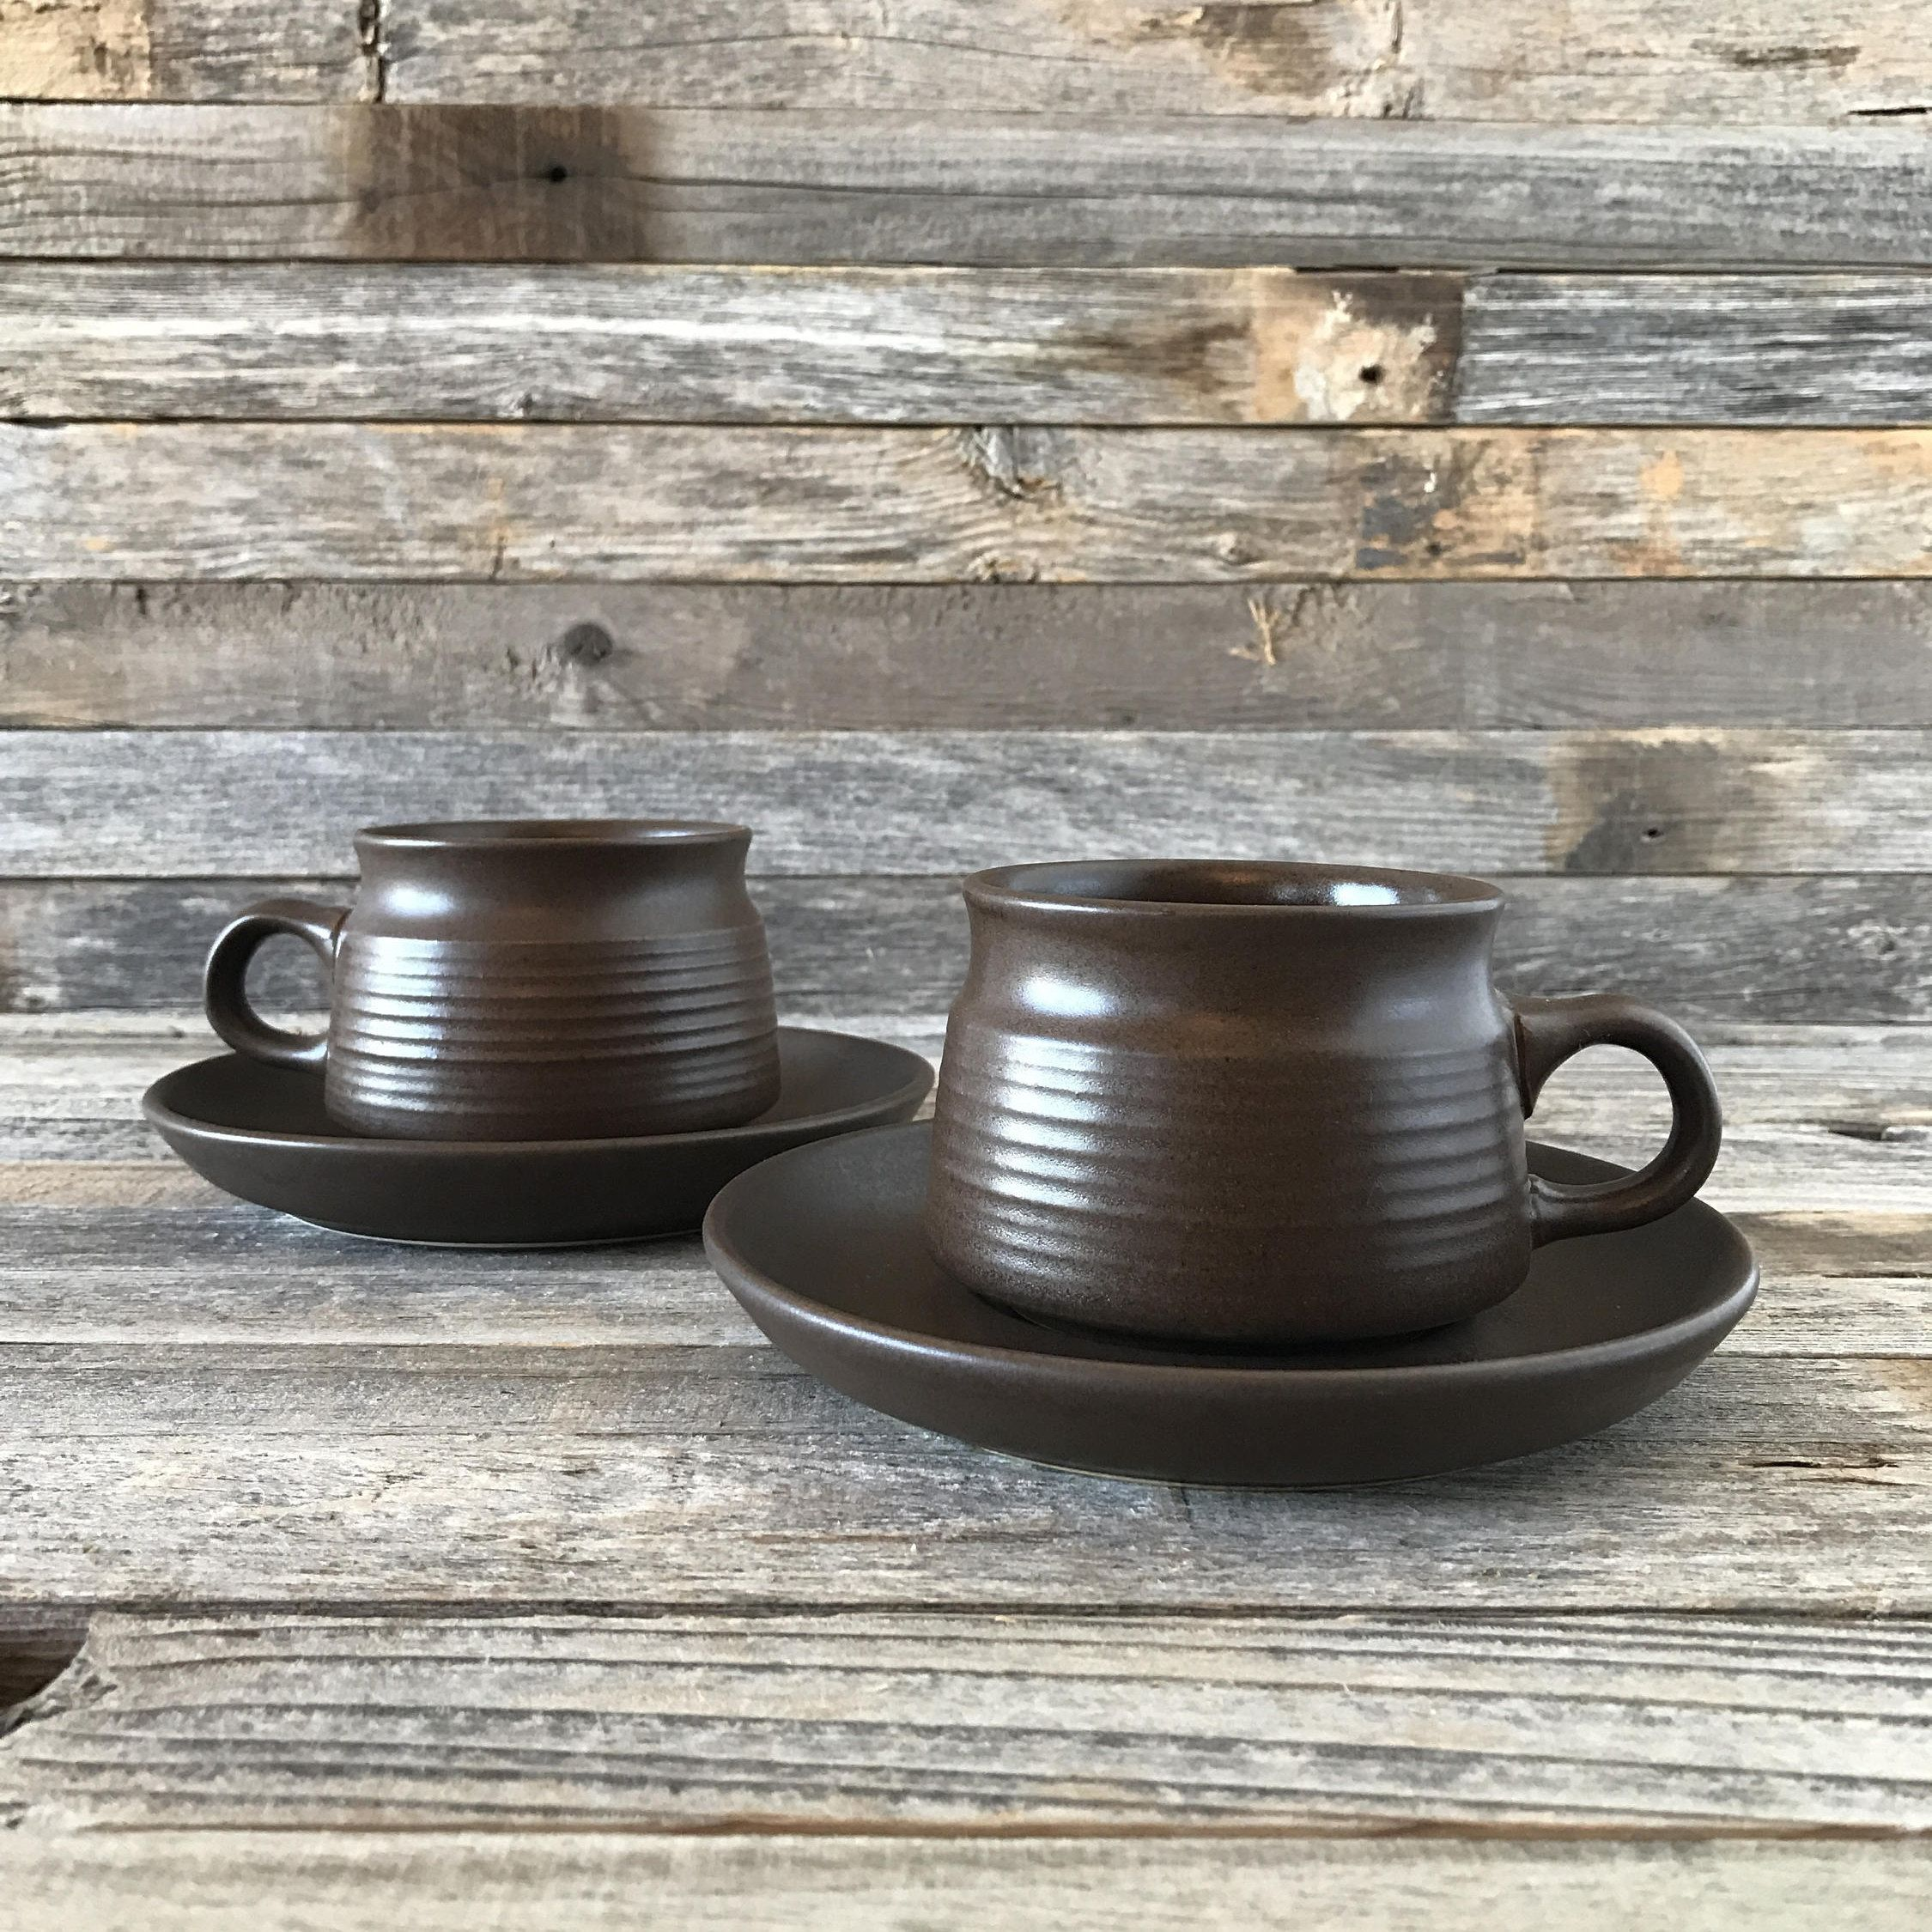 Set of 2 vintage stoneware cups with matching saucers Mayflower by Denby. Dark brown inside and out with a simple shape and ribbed detail on the cup. & Set of 2 vintage stoneware cups with matching saucers Mayflower by ...